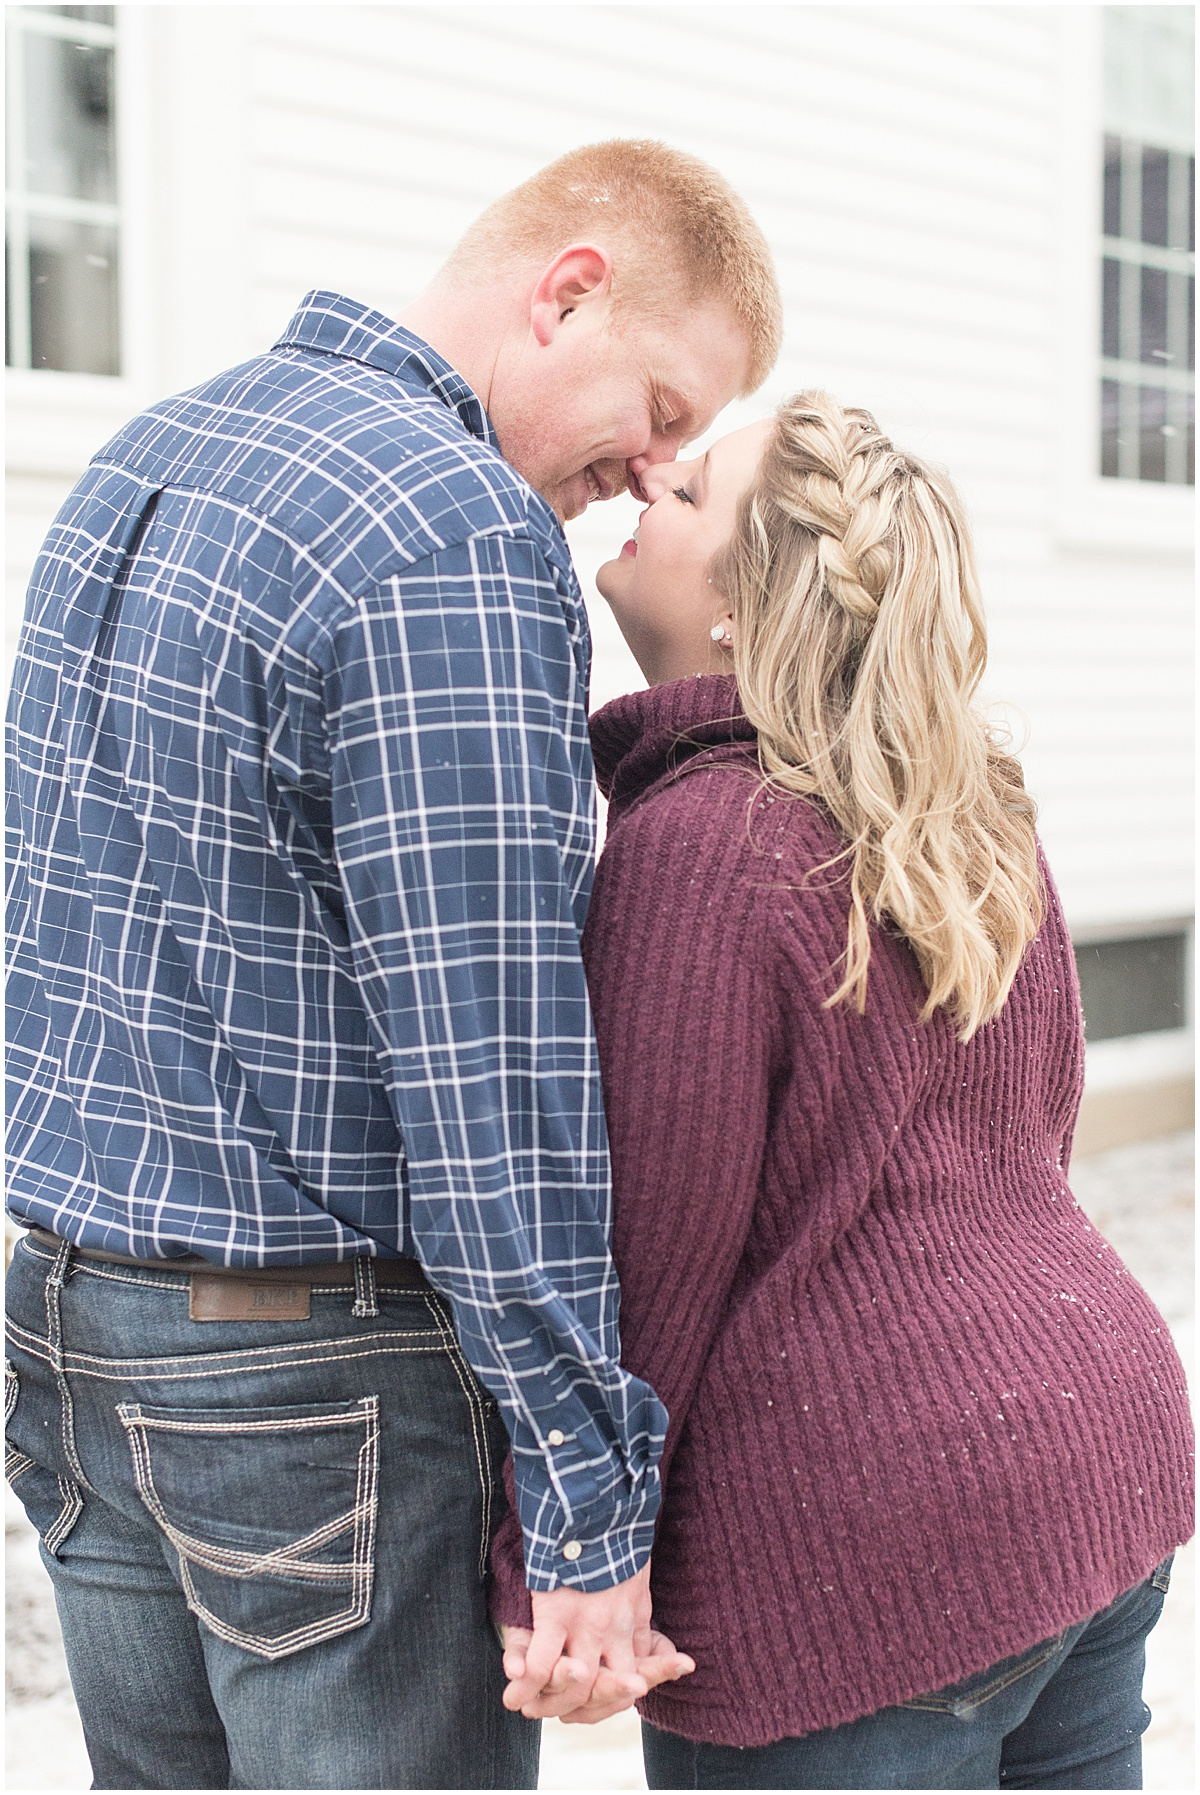 Ryan & Katie - Country Engagement Photos in Otterbein Indiana29.jpg